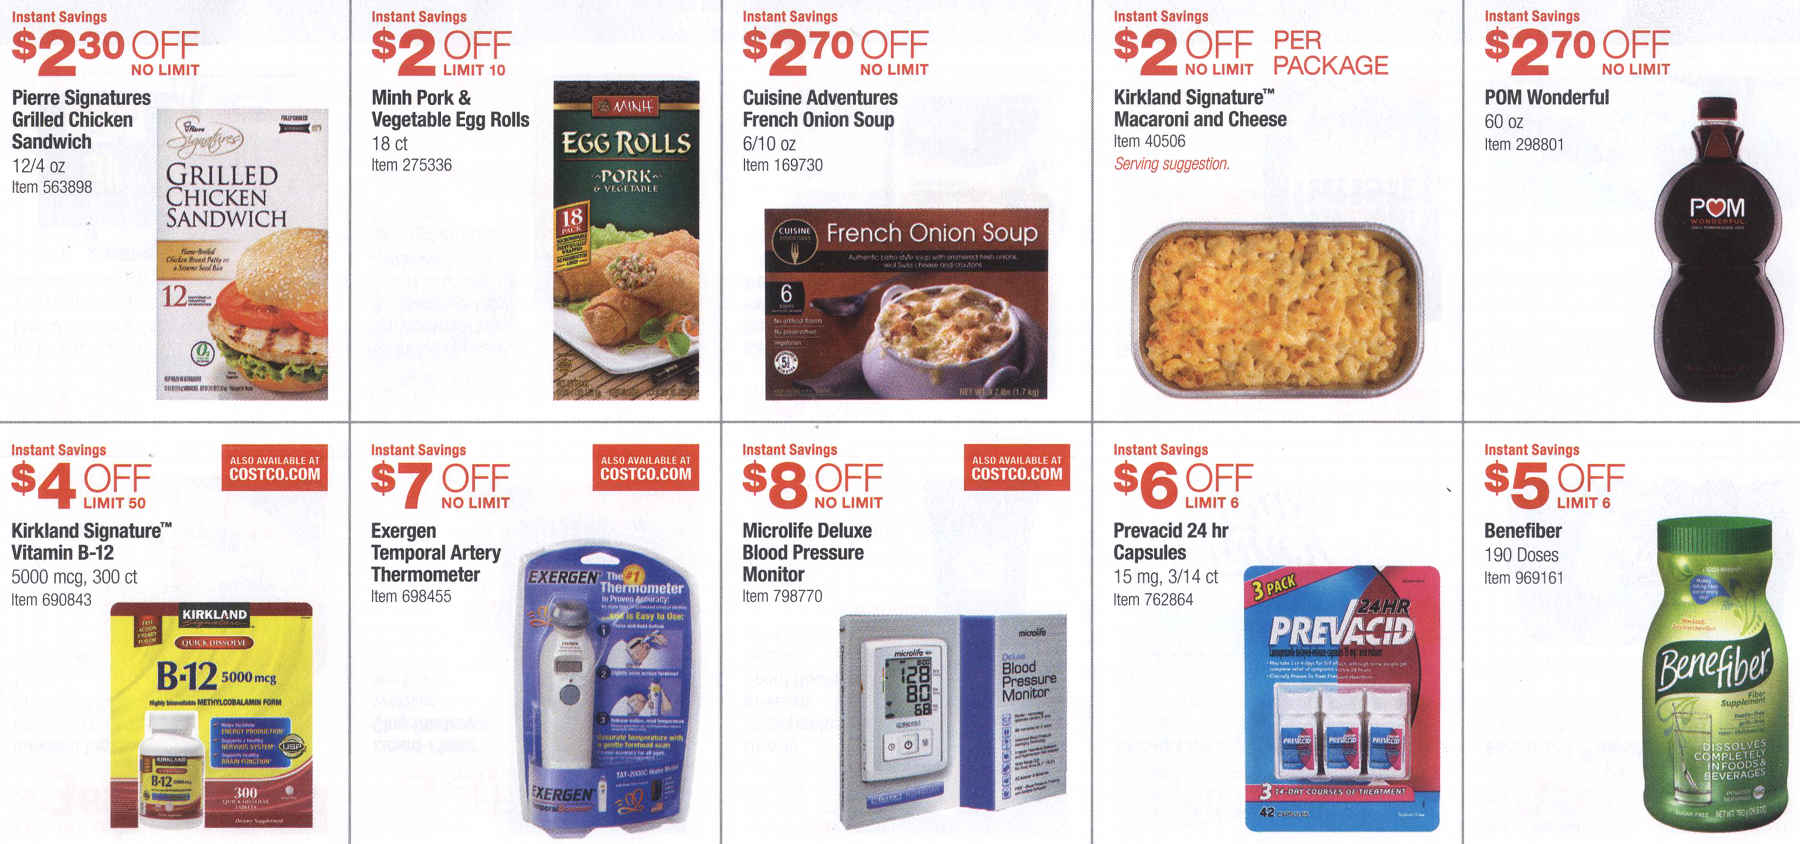 December 2015 Costco Coupon Book Page 8